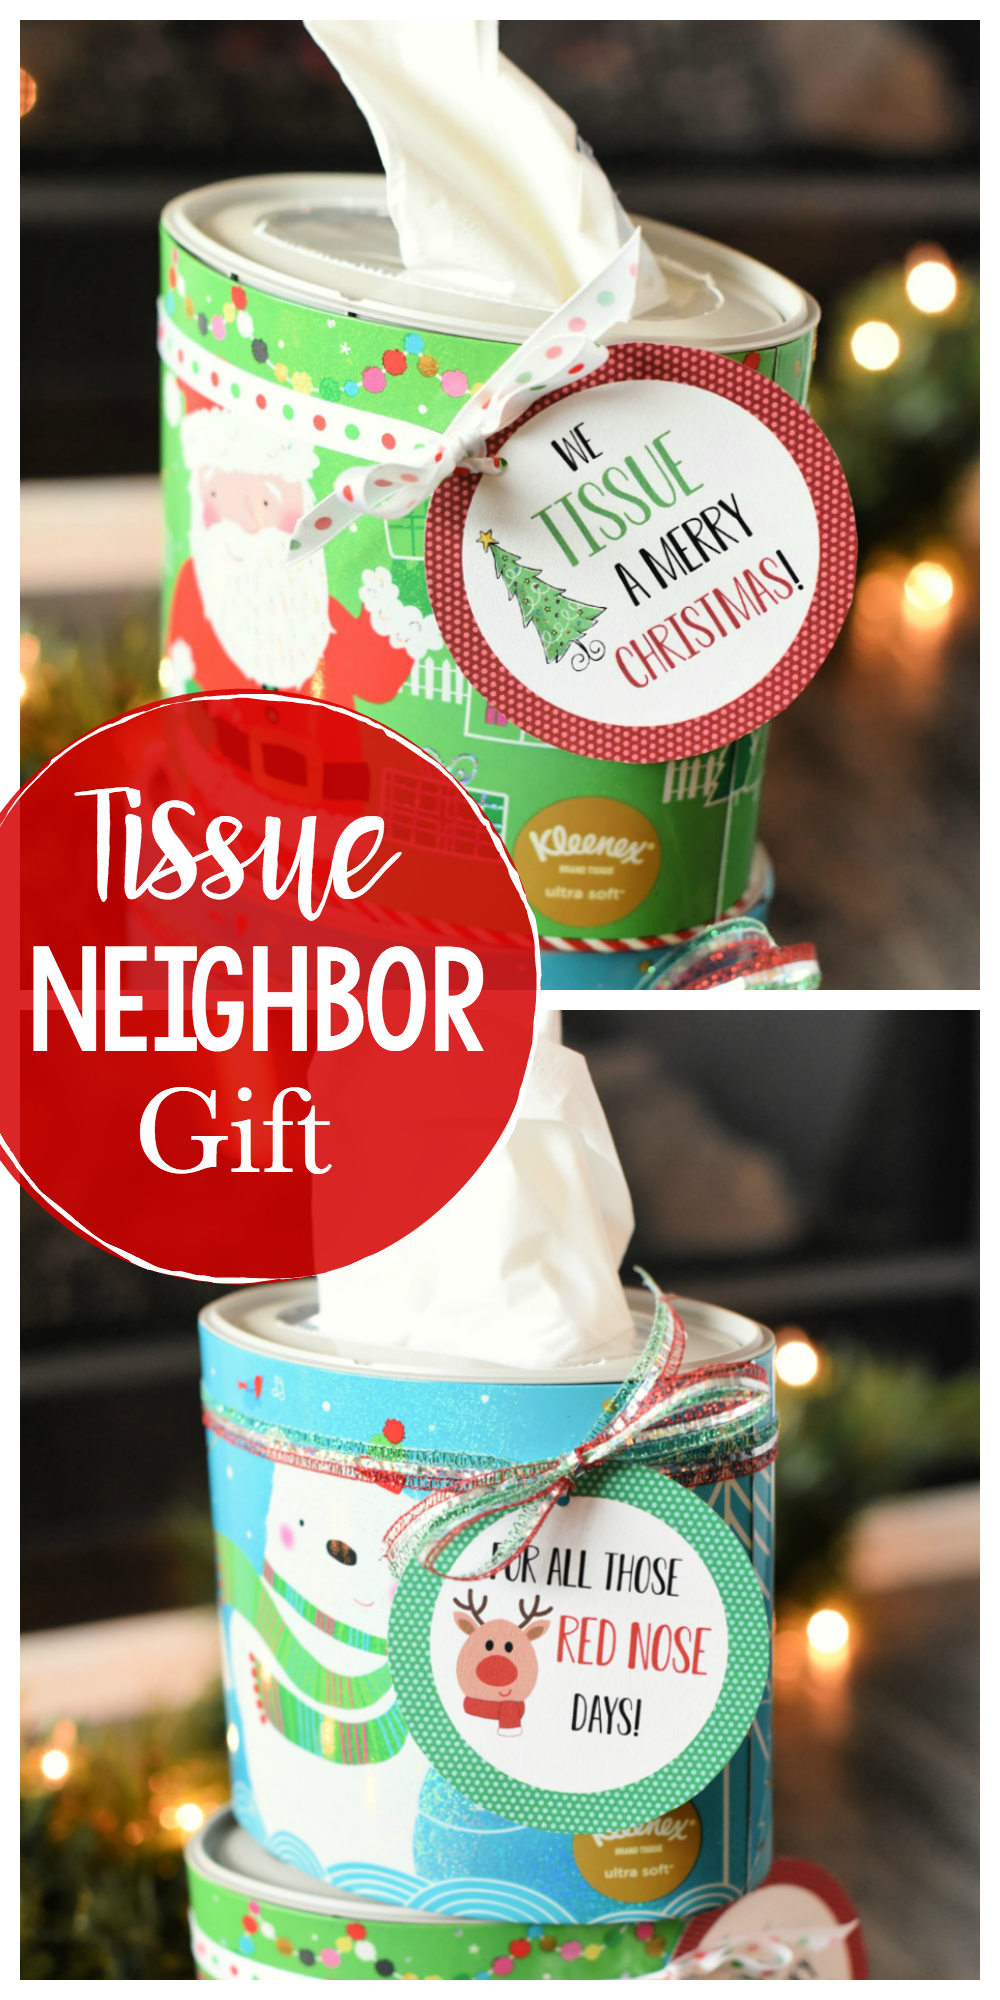 We Tissue a Merry Christmas! This cute neighbor gift idea is so easy to pull off and something they will love! Two tags available (the other one says For All Those Red Nose Days!) So simple and fun! #christmasgiftideas #neighborgiftideas